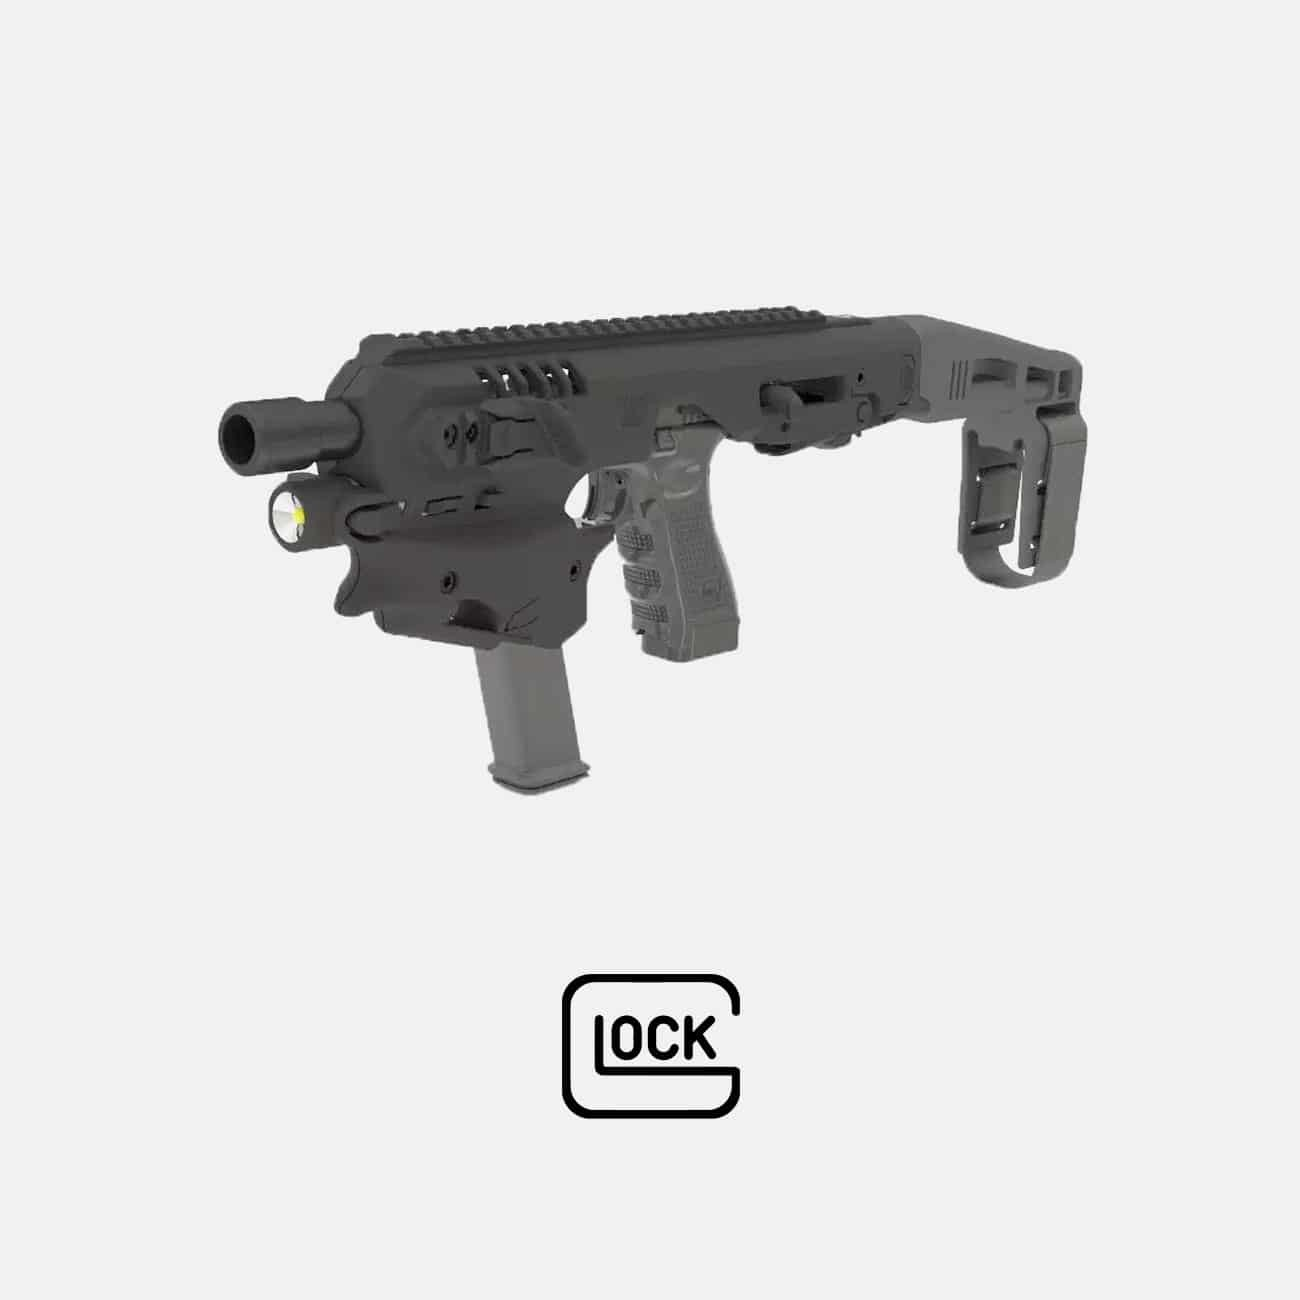 MCK Kit G21/G20 Micro Conversion Kit